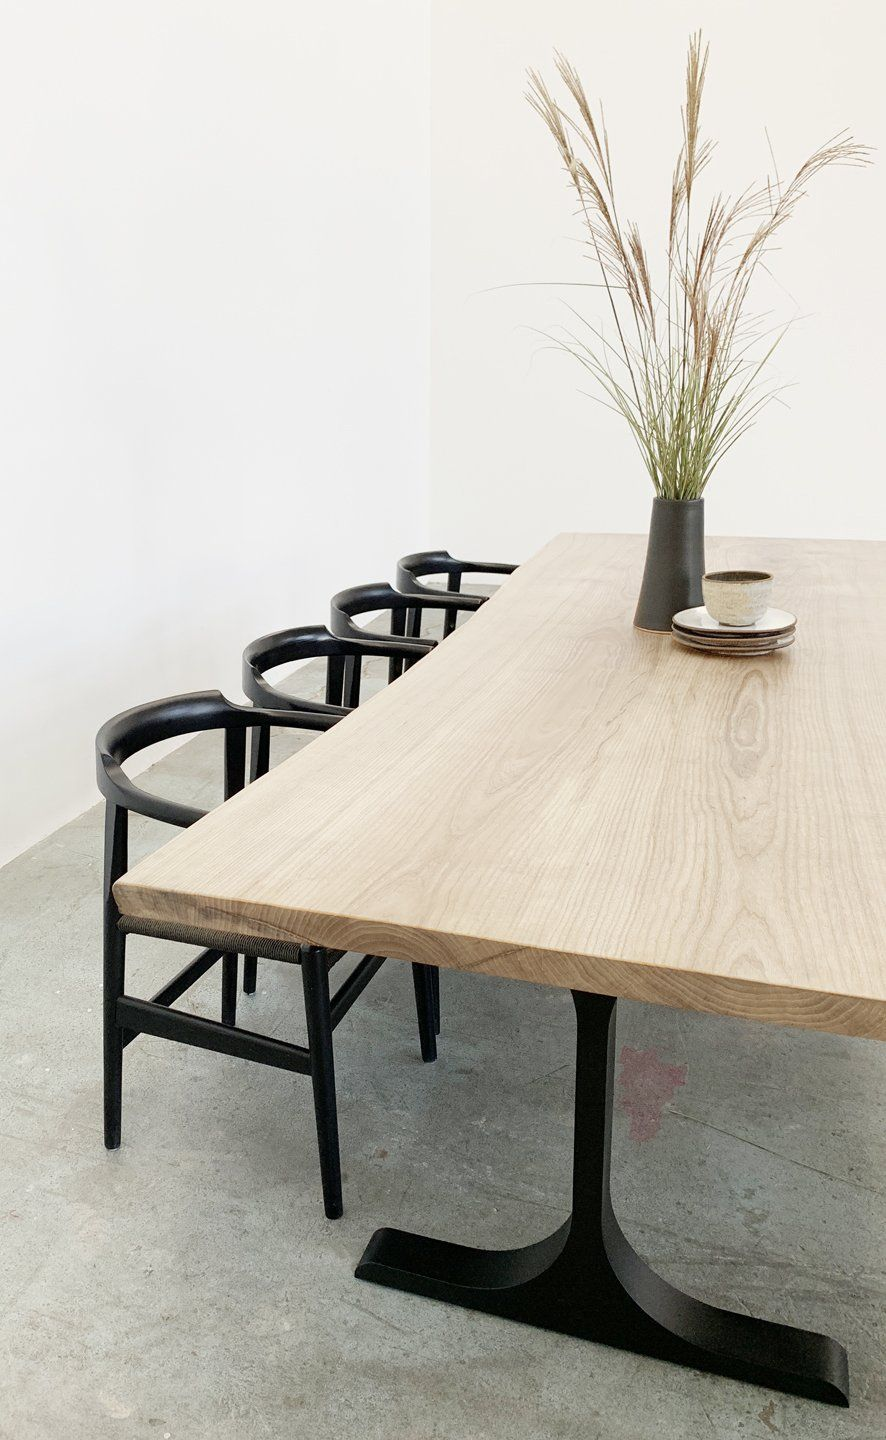 Mars Live Edge Dining Table White Ash With Metal T Legs In 2020 Live Edge Dining Table Dining Table Ash Dining Tables